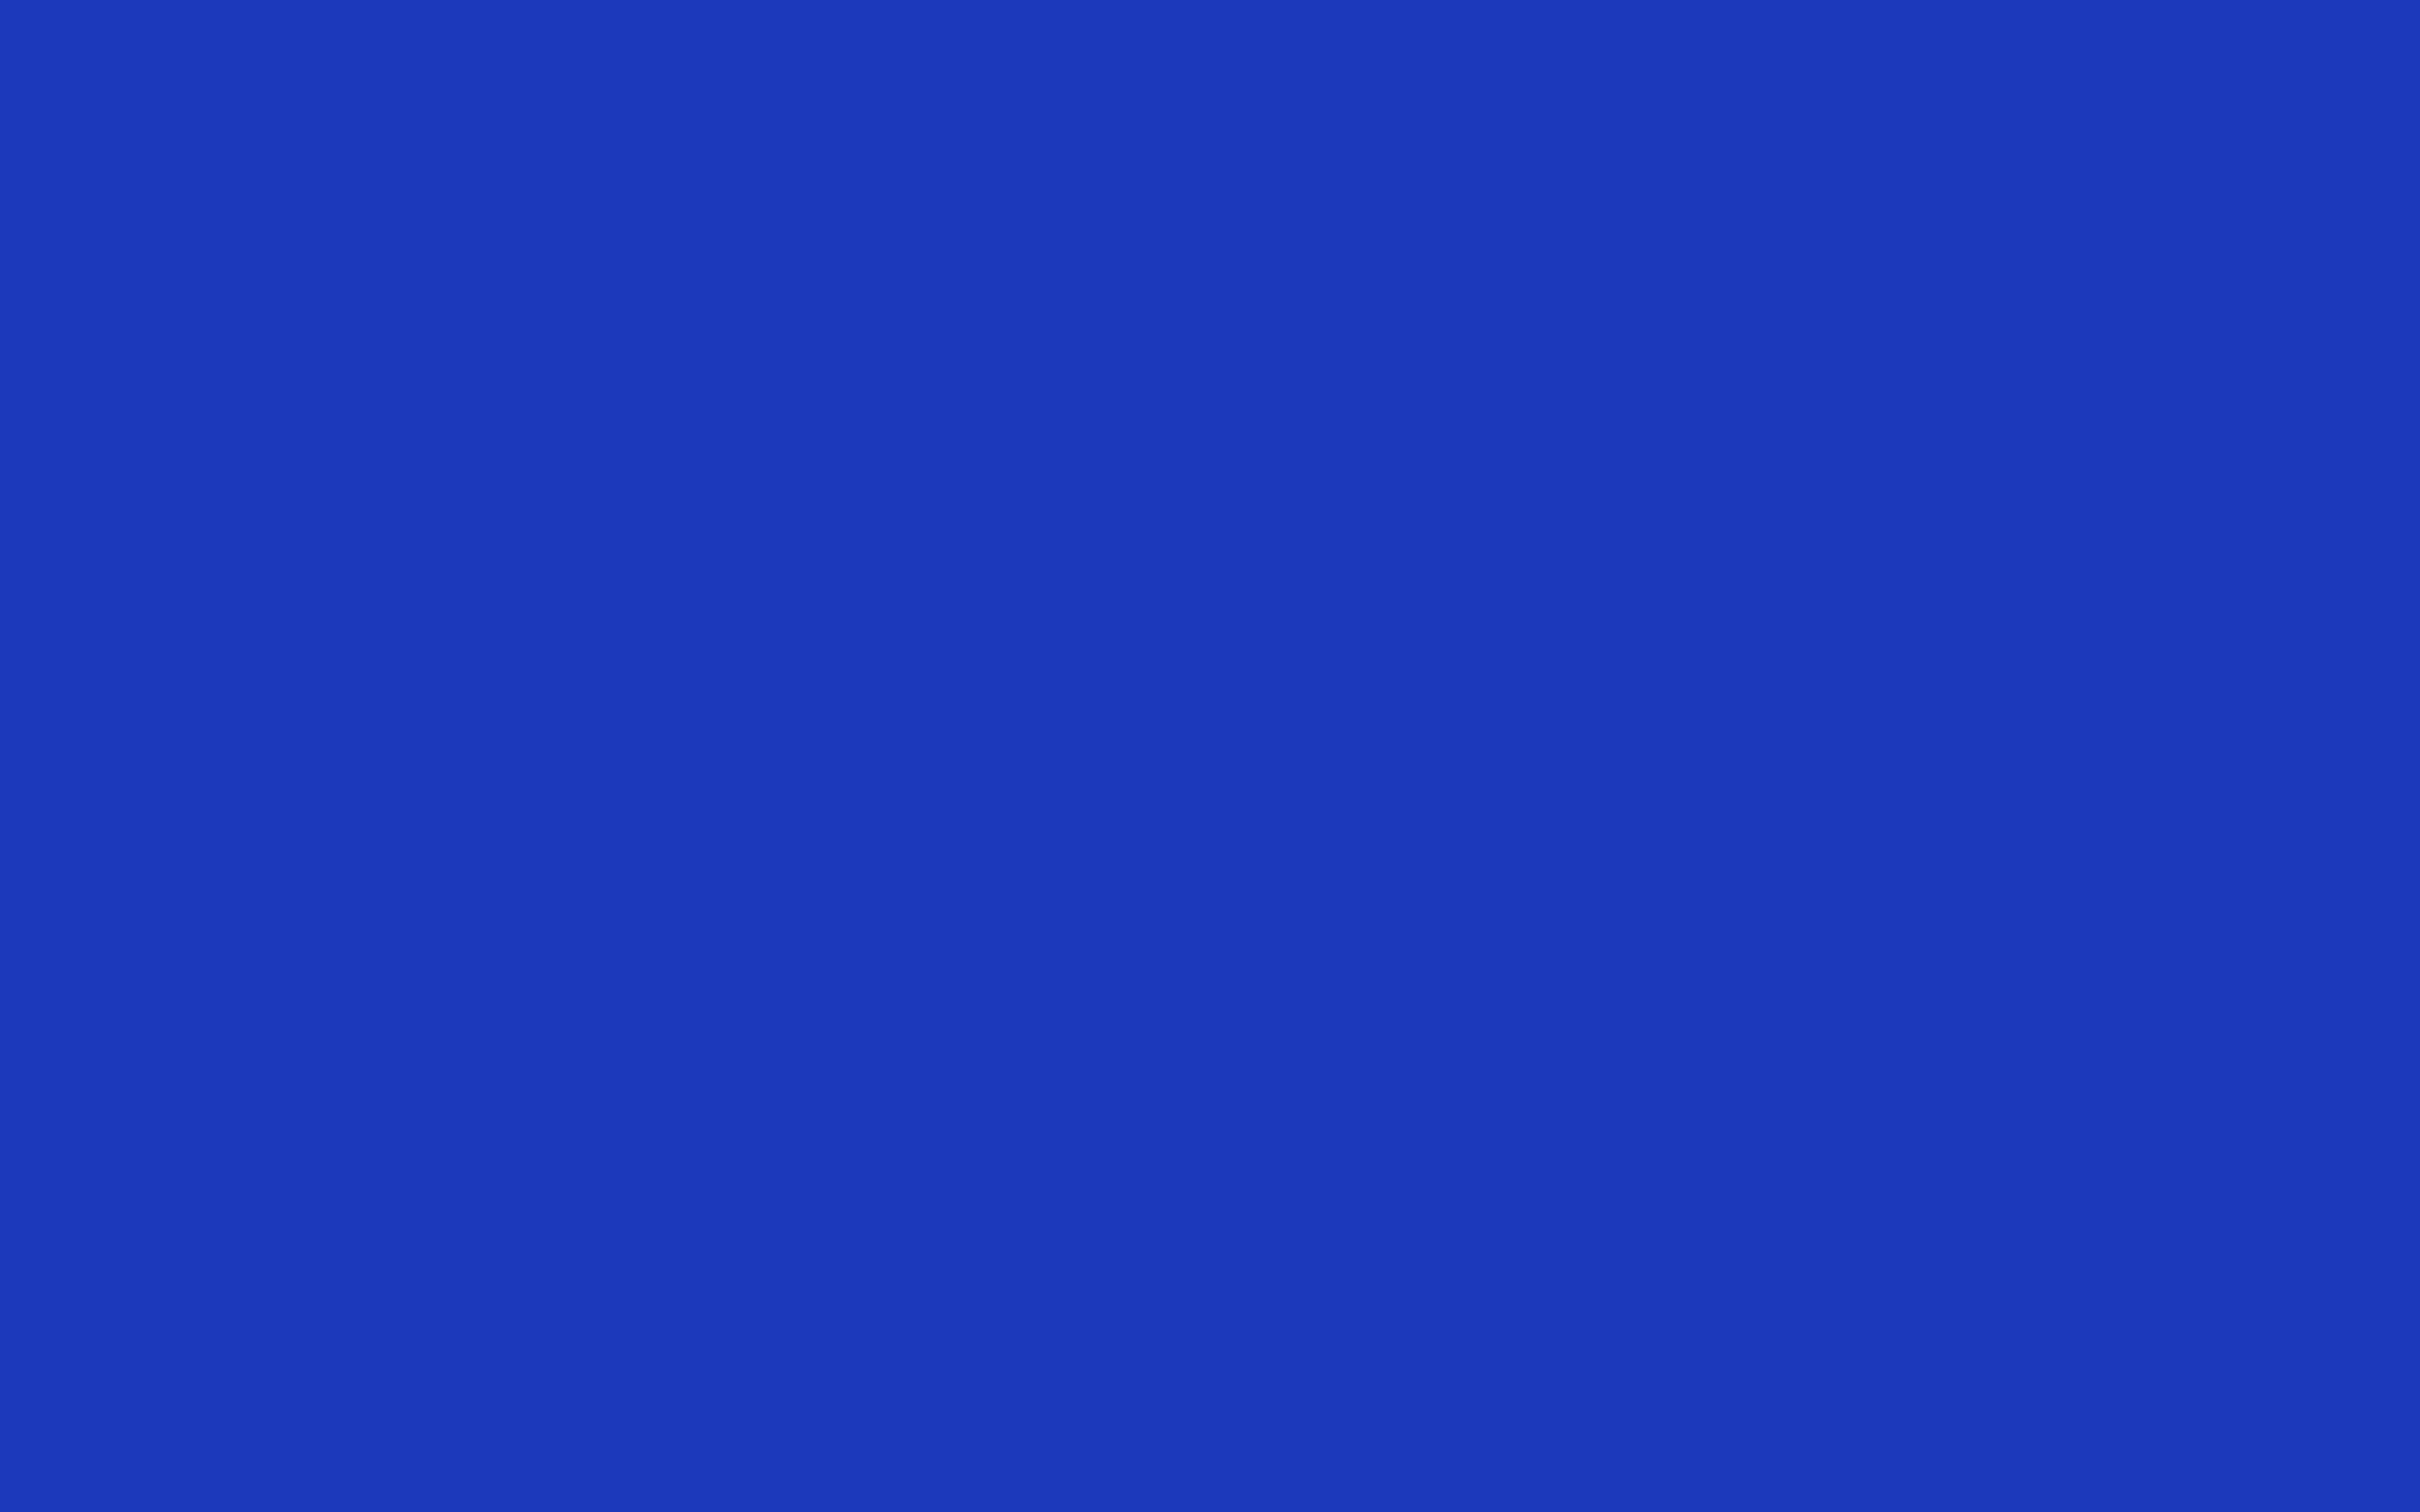 2560x1600 Persian Blue Solid Color Background